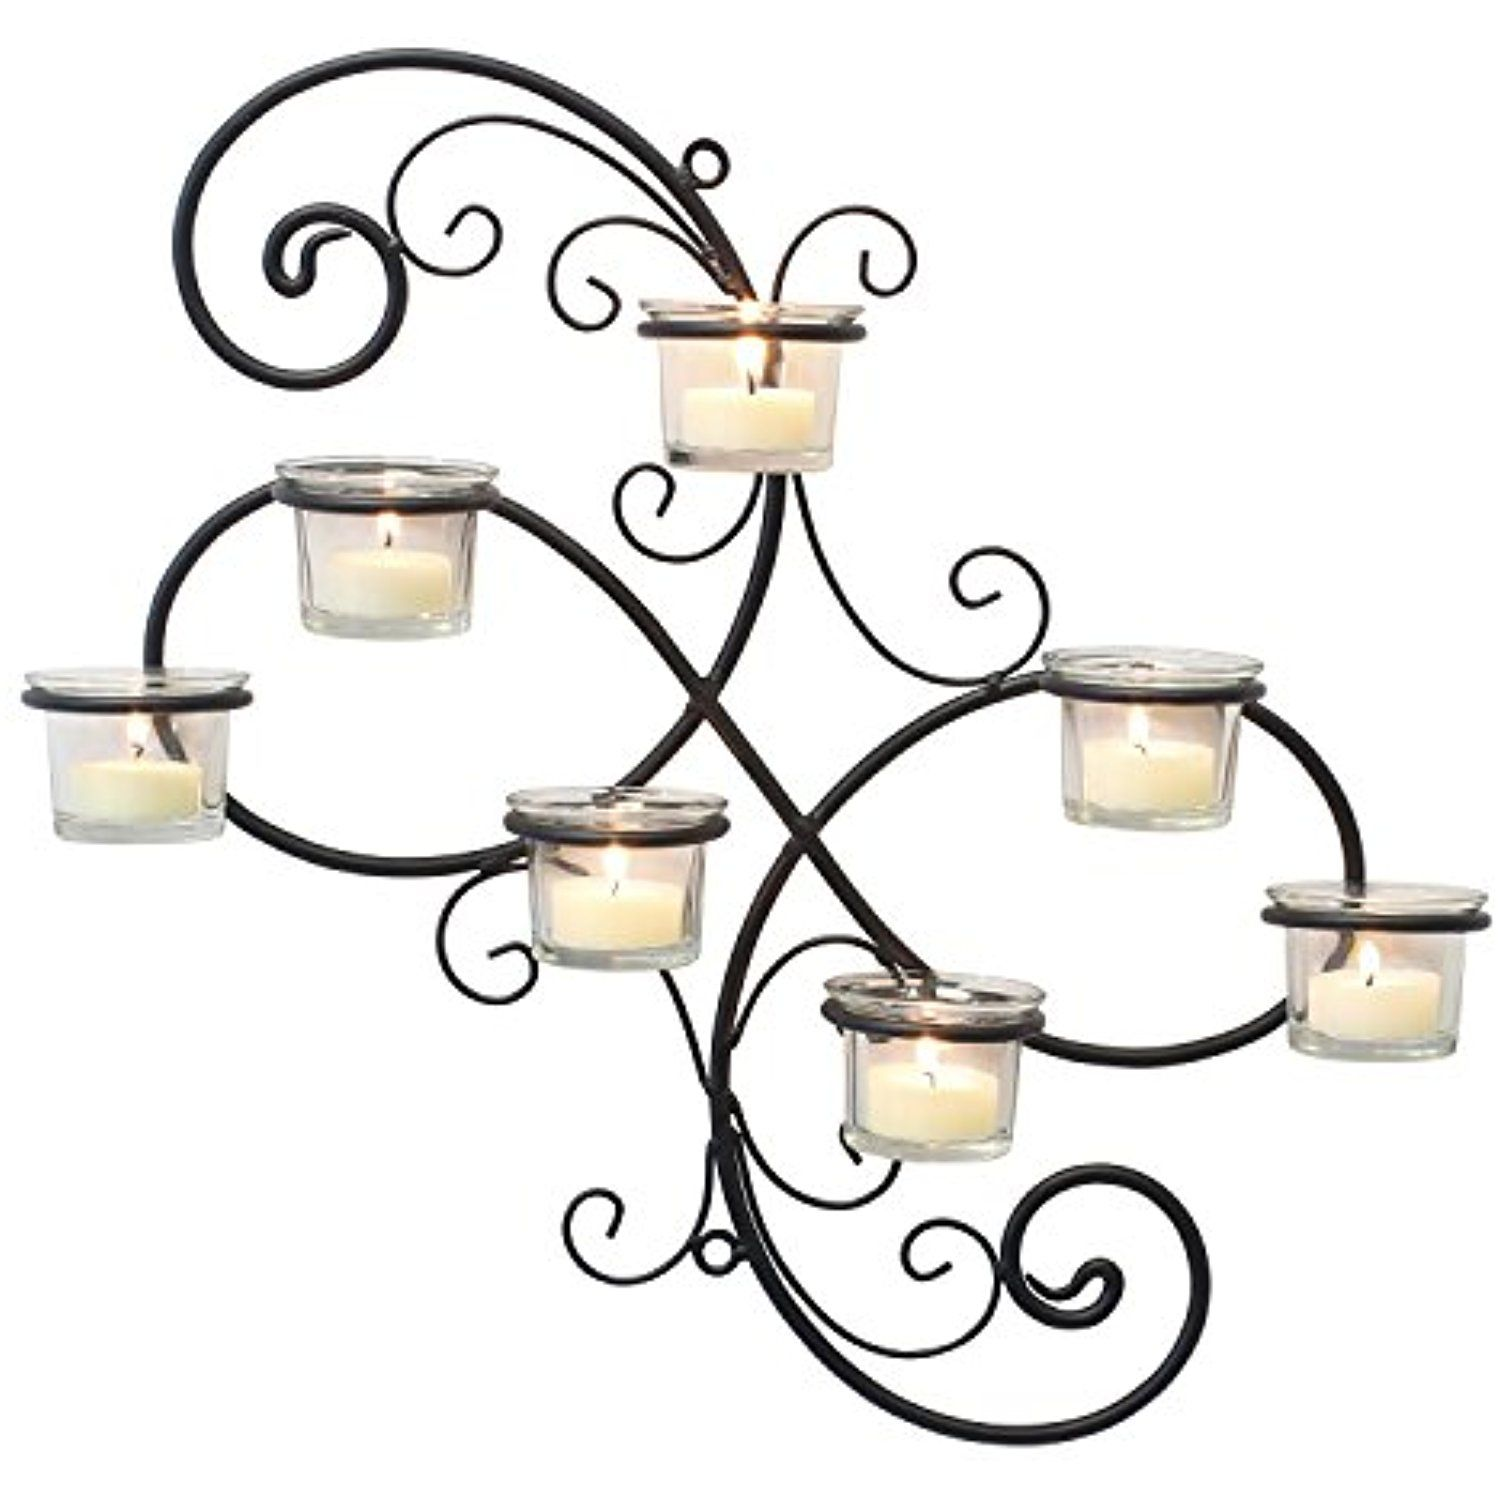 Decorative Sconces Wall candle holders, Candle sconces